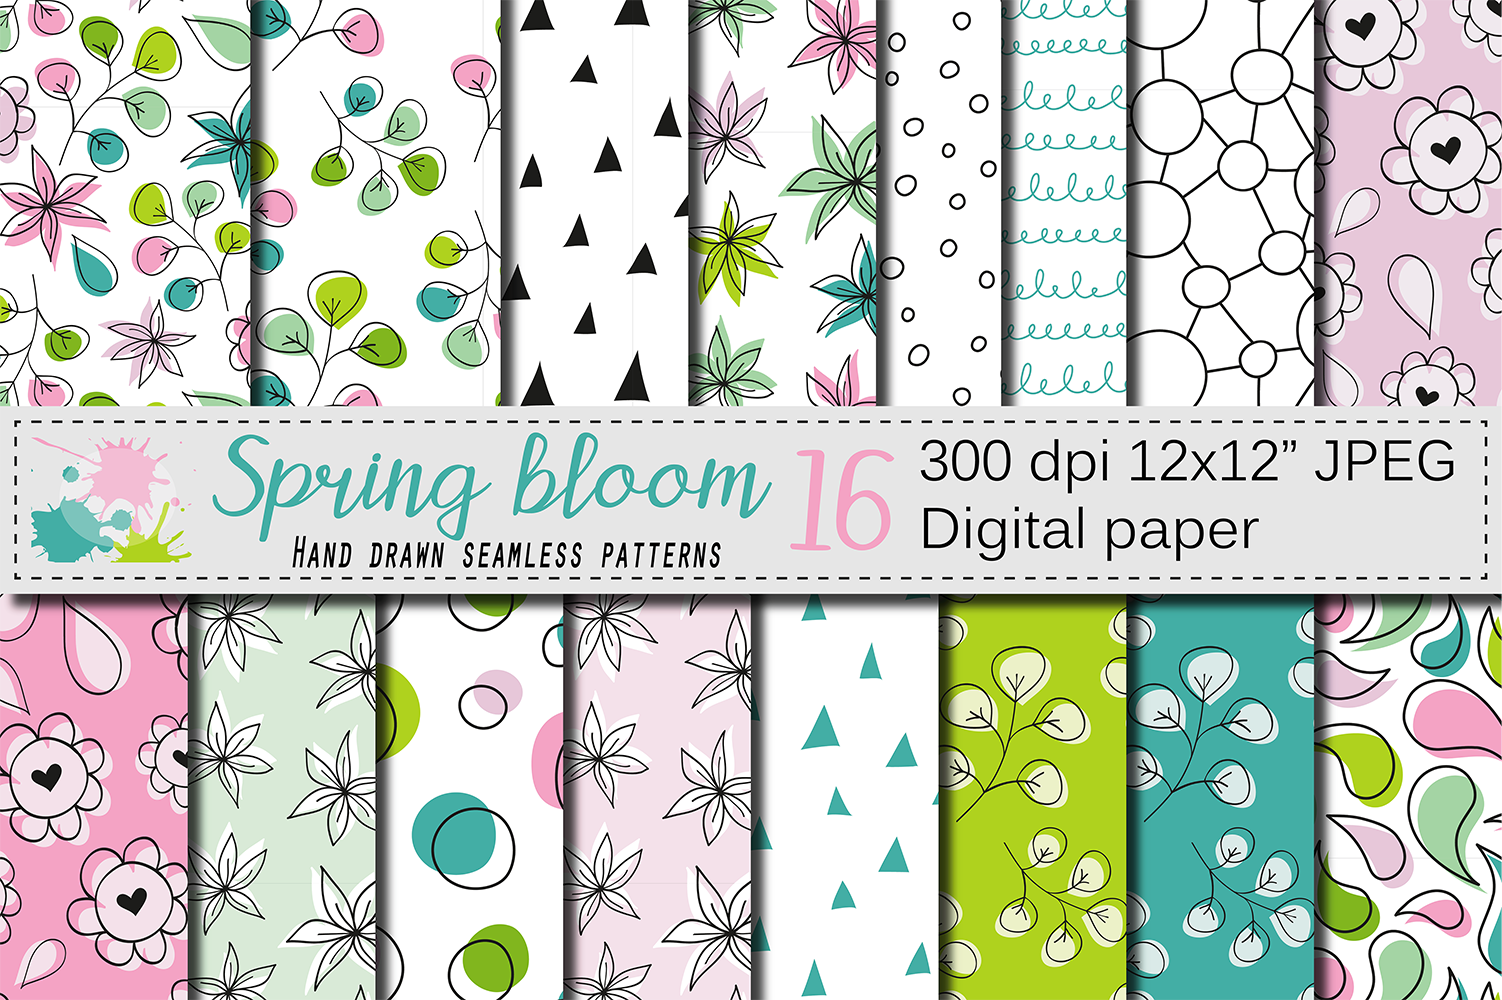 Download Free Seamless Digital Paper Patterns Graphic By Vr Digital Design for Cricut Explore, Silhouette and other cutting machines.